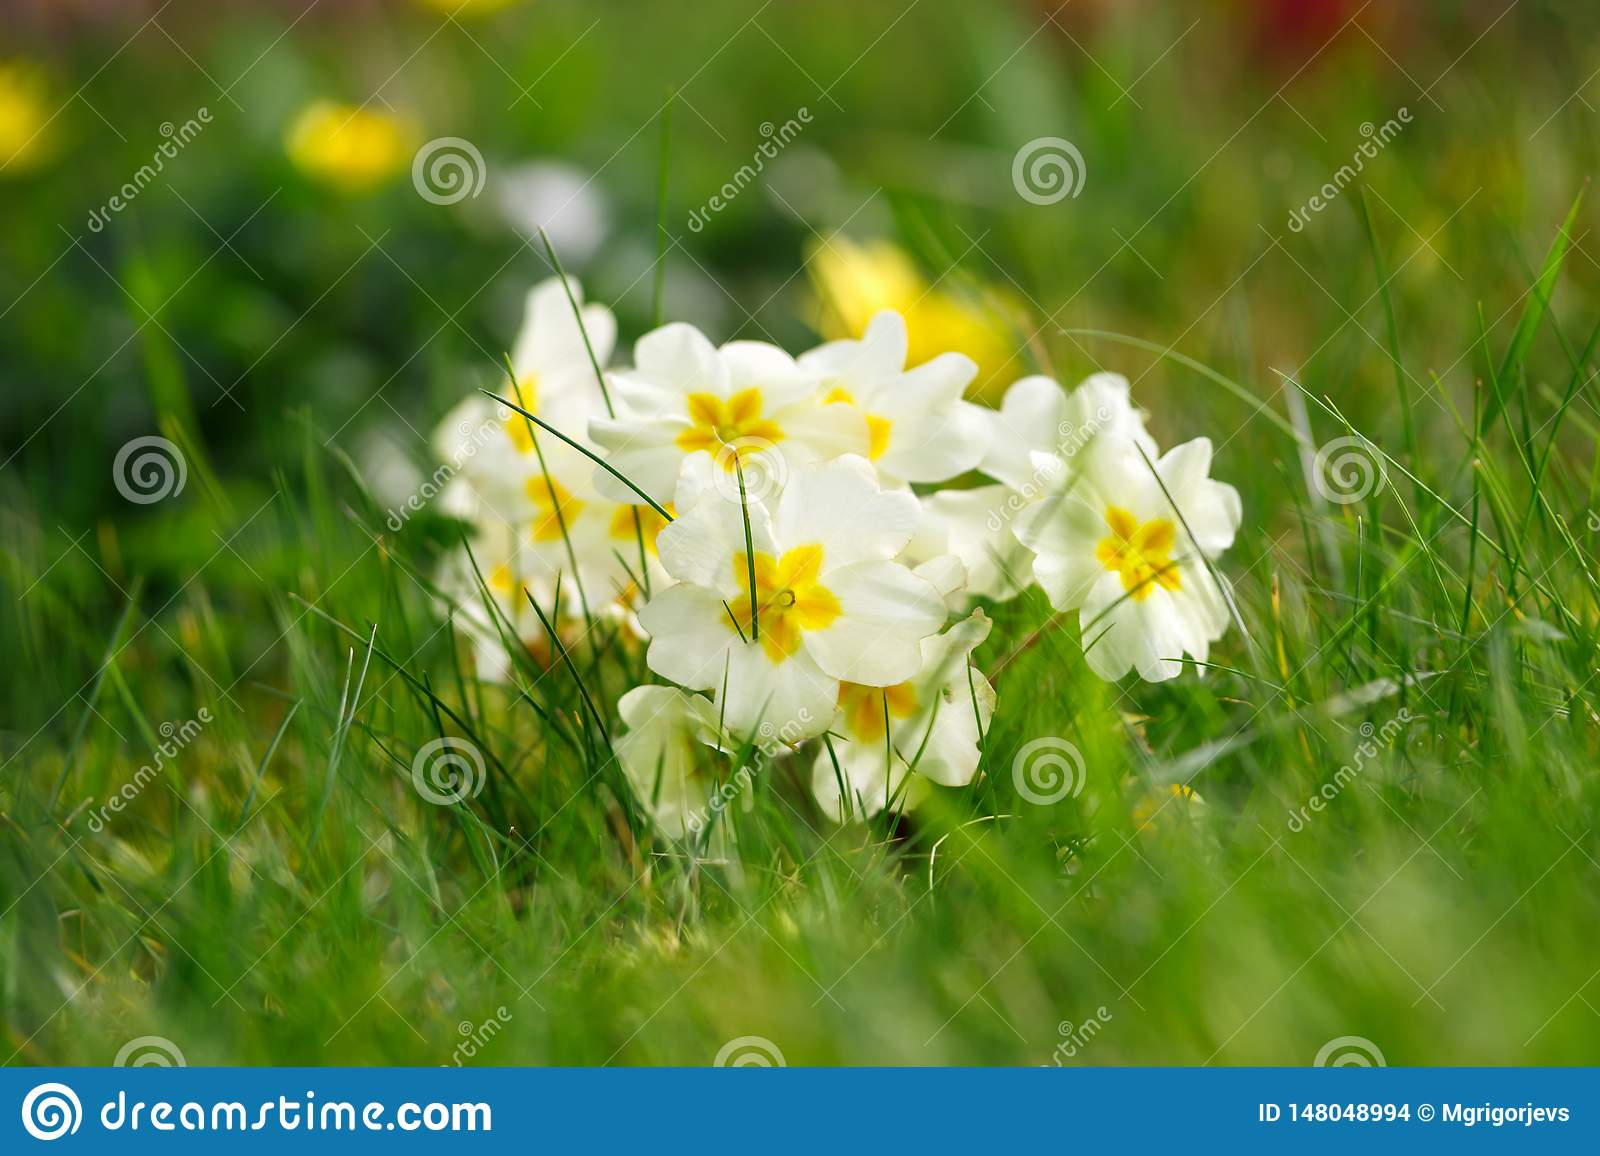 Beautiful spring primroses flowers. primula polyanthus or Perennial primrose. with green leaves in the garden. Nature concept